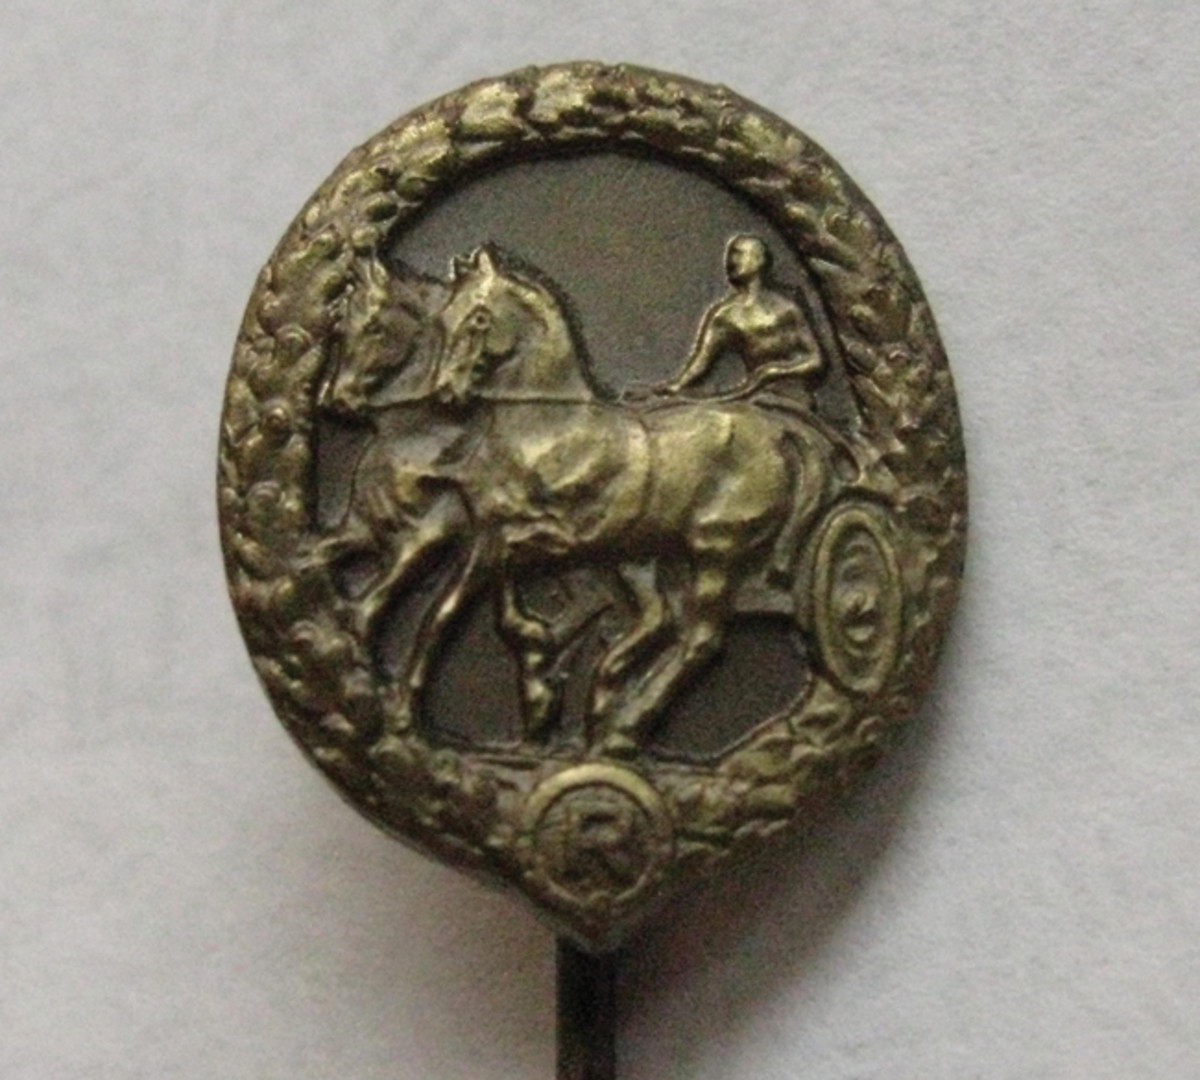 The miniature German Driver's Badge was issued with the full sized award. The miniatures were often worn on civilian clothing.